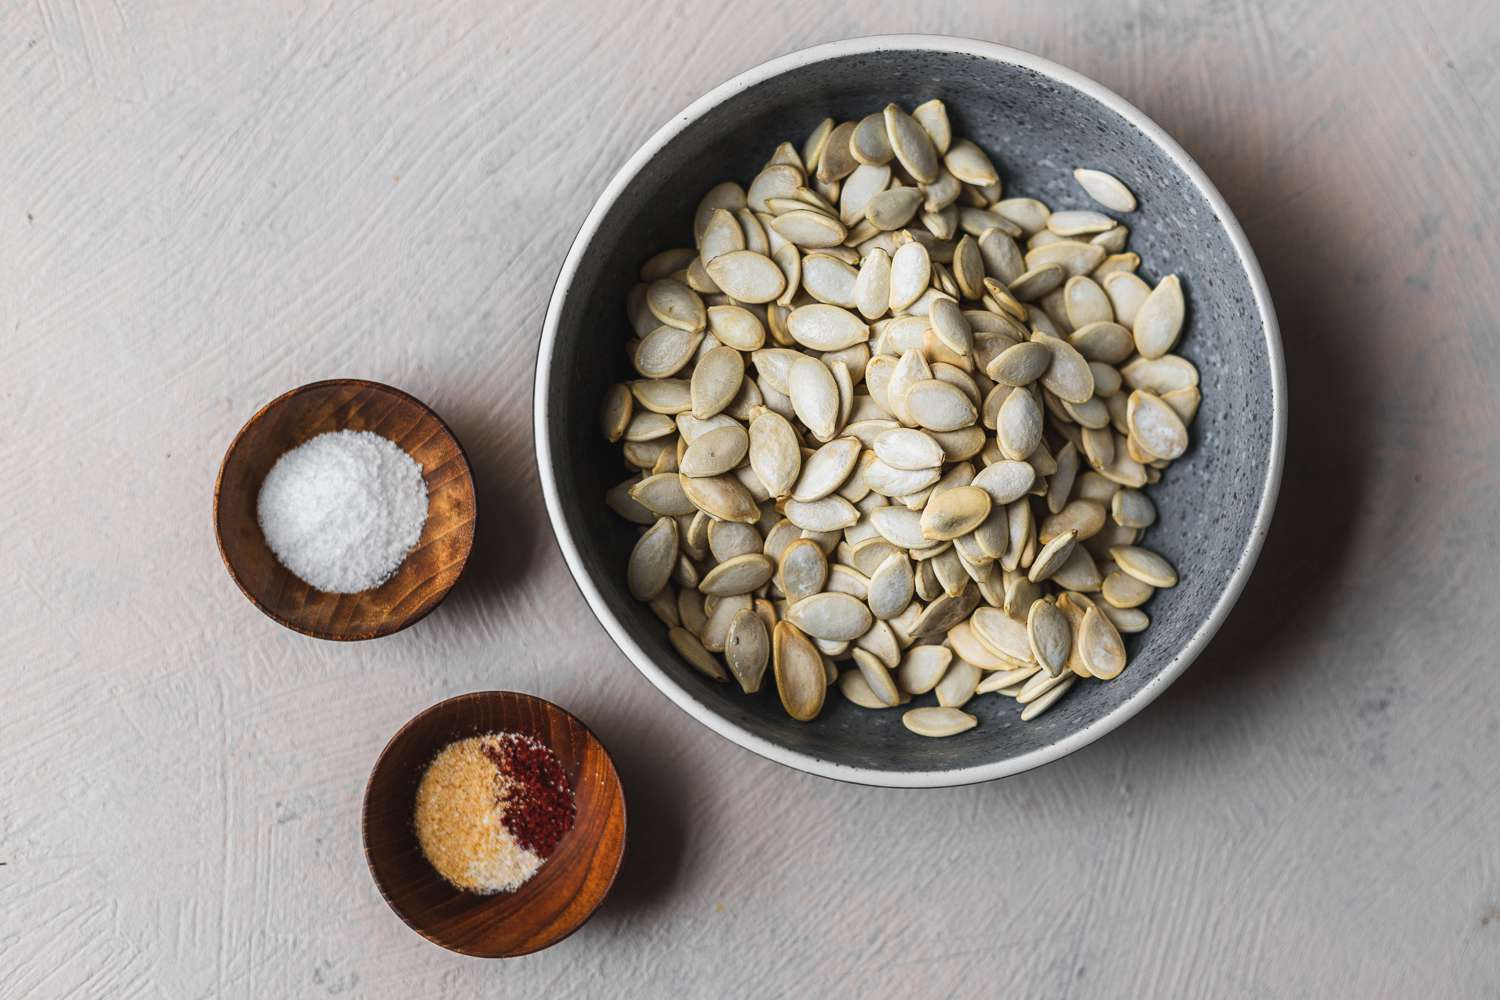 Ingredients for toasted pumpkin seeds